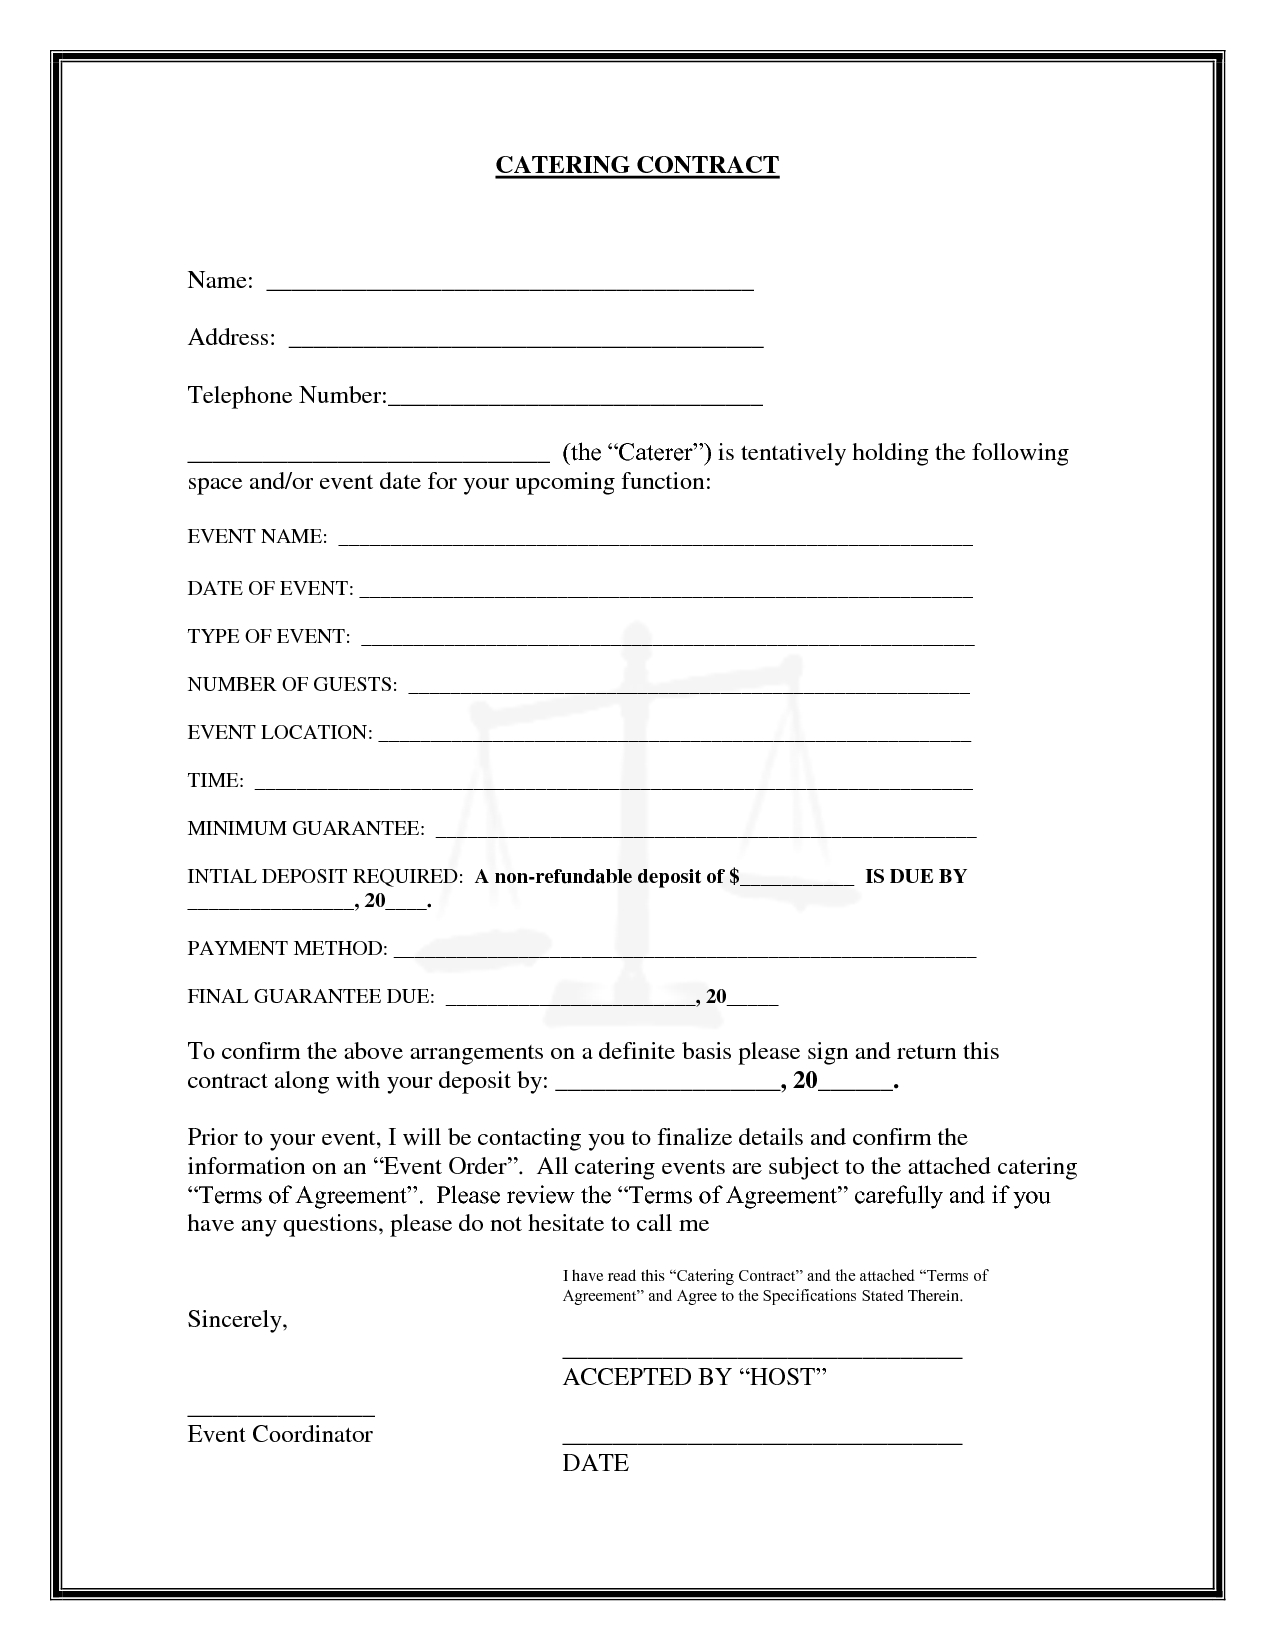 Catering Contract Catering Contract Name   Birthday Parties With Catering Contract Template Word